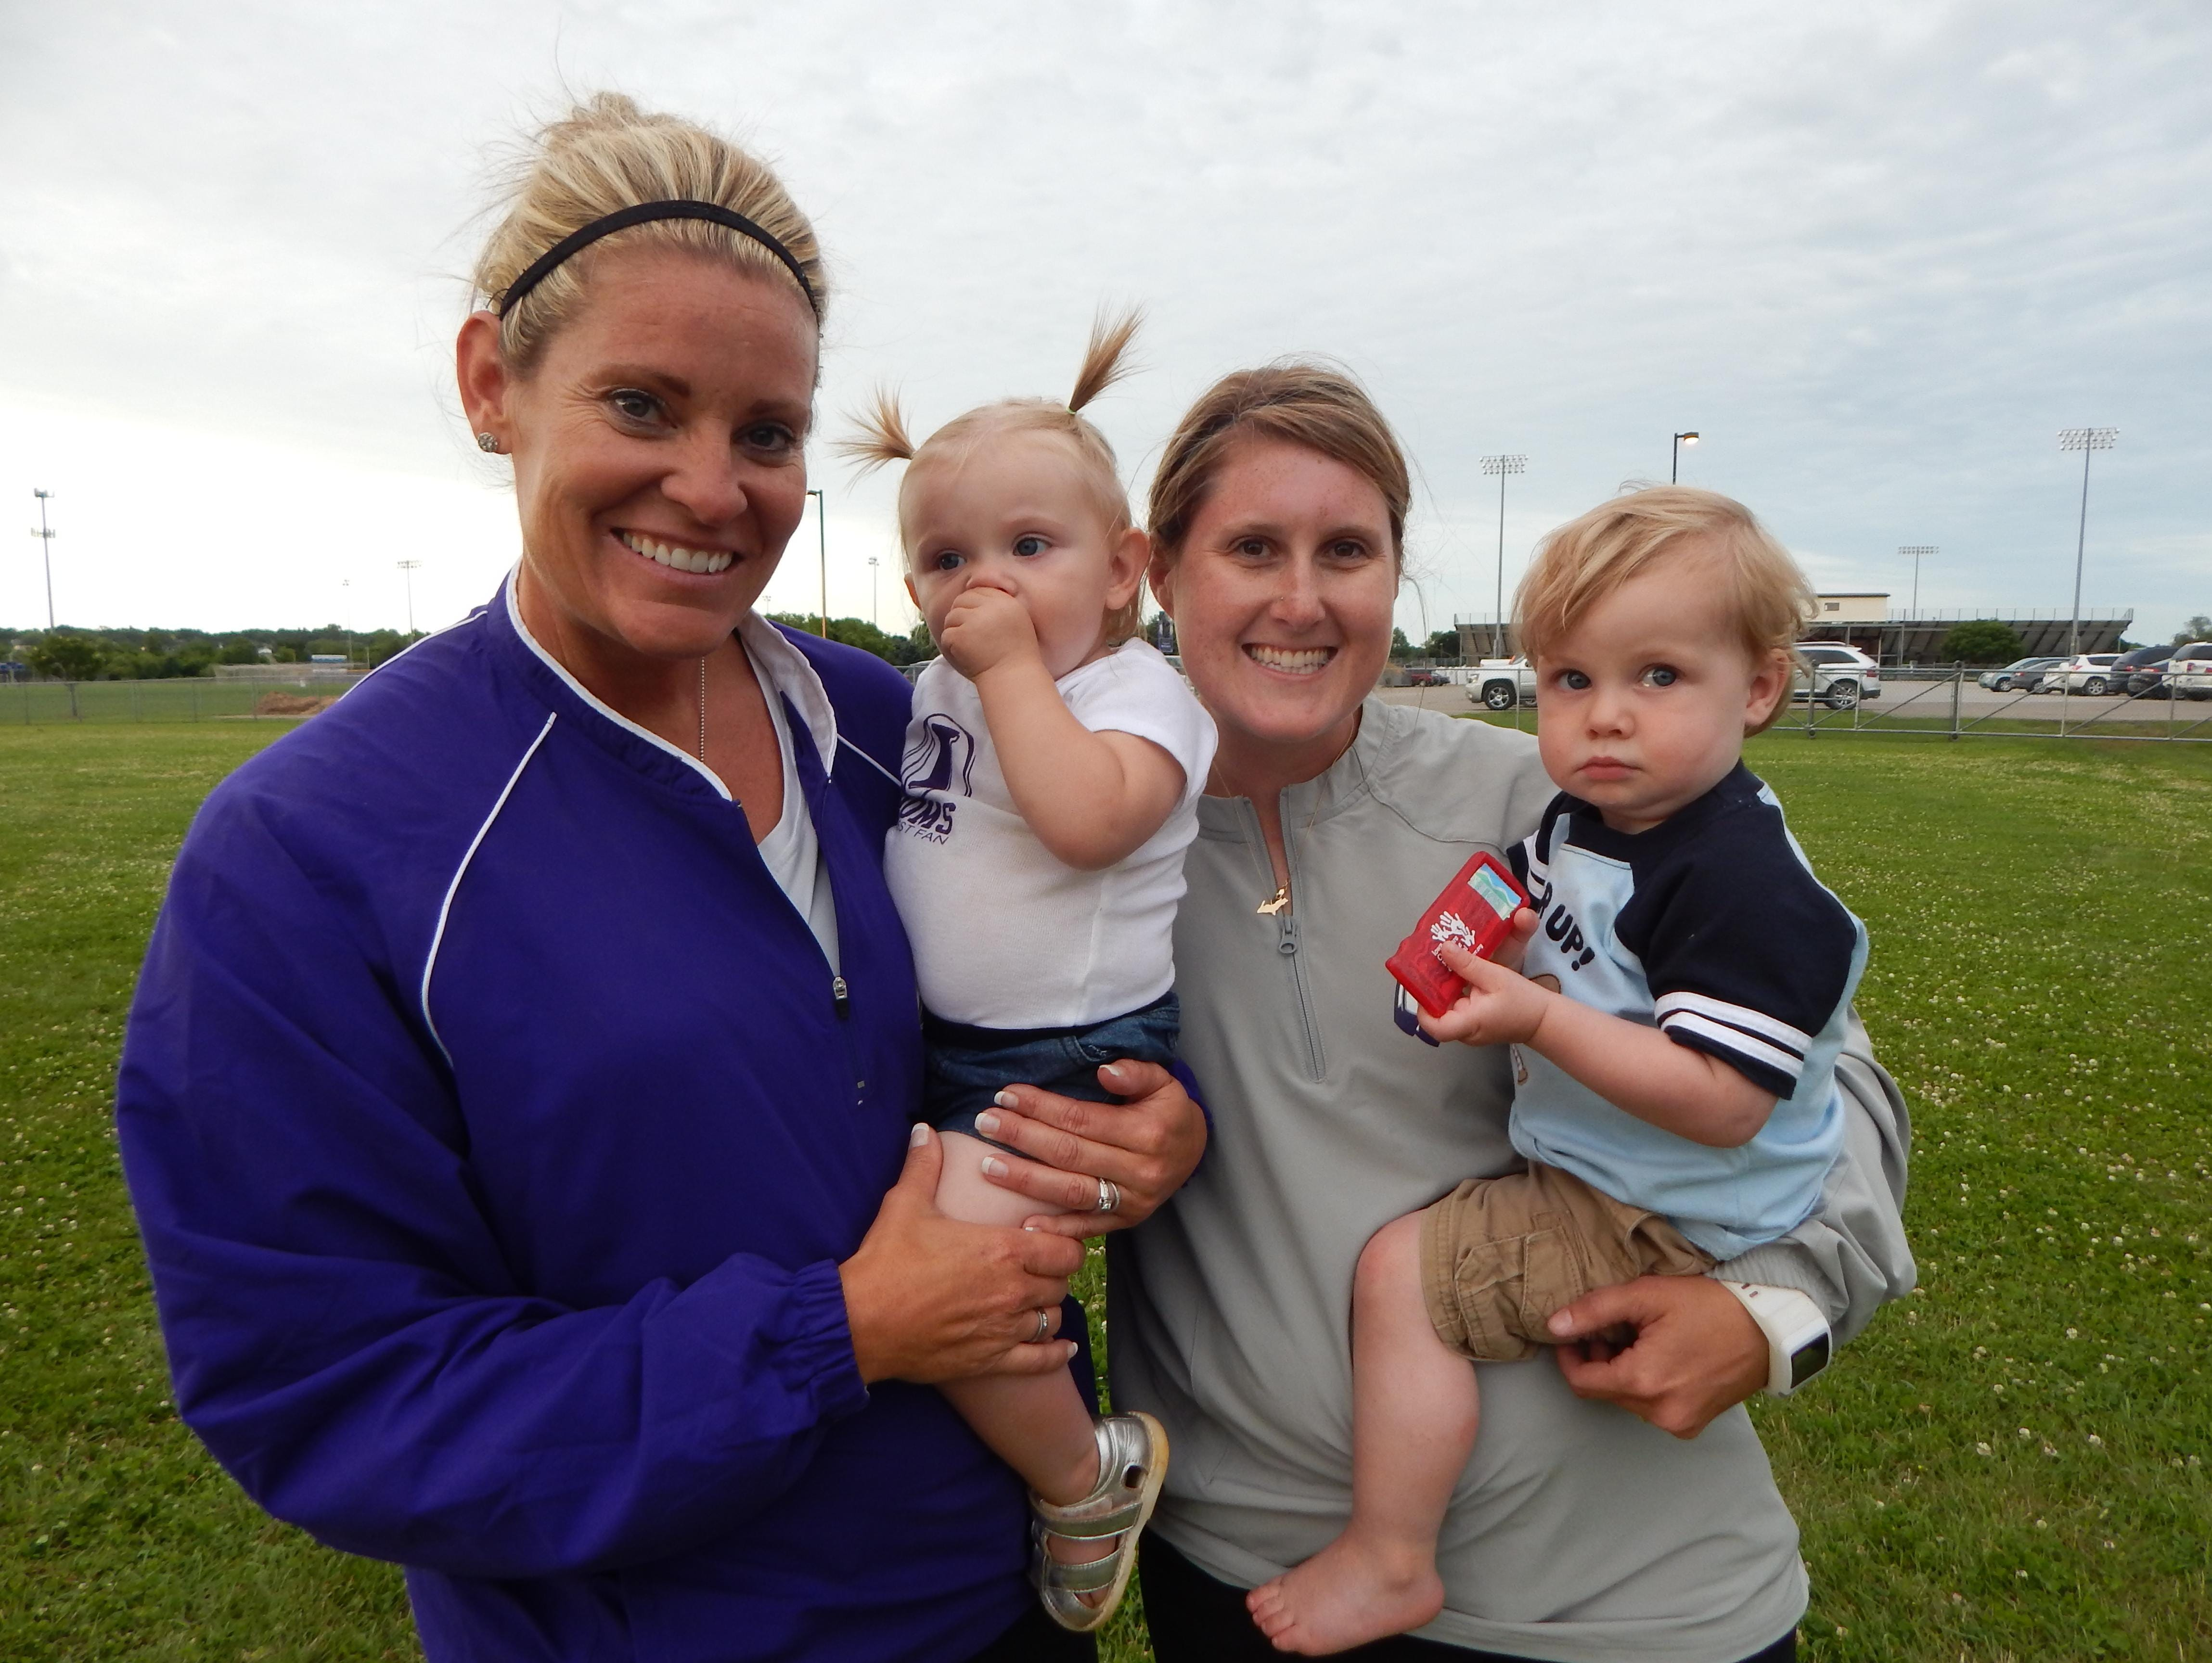 Indianola's Stacy Evans (left) and Melisse Jacobson juggle coaching softball and taking care of toddlers, too.